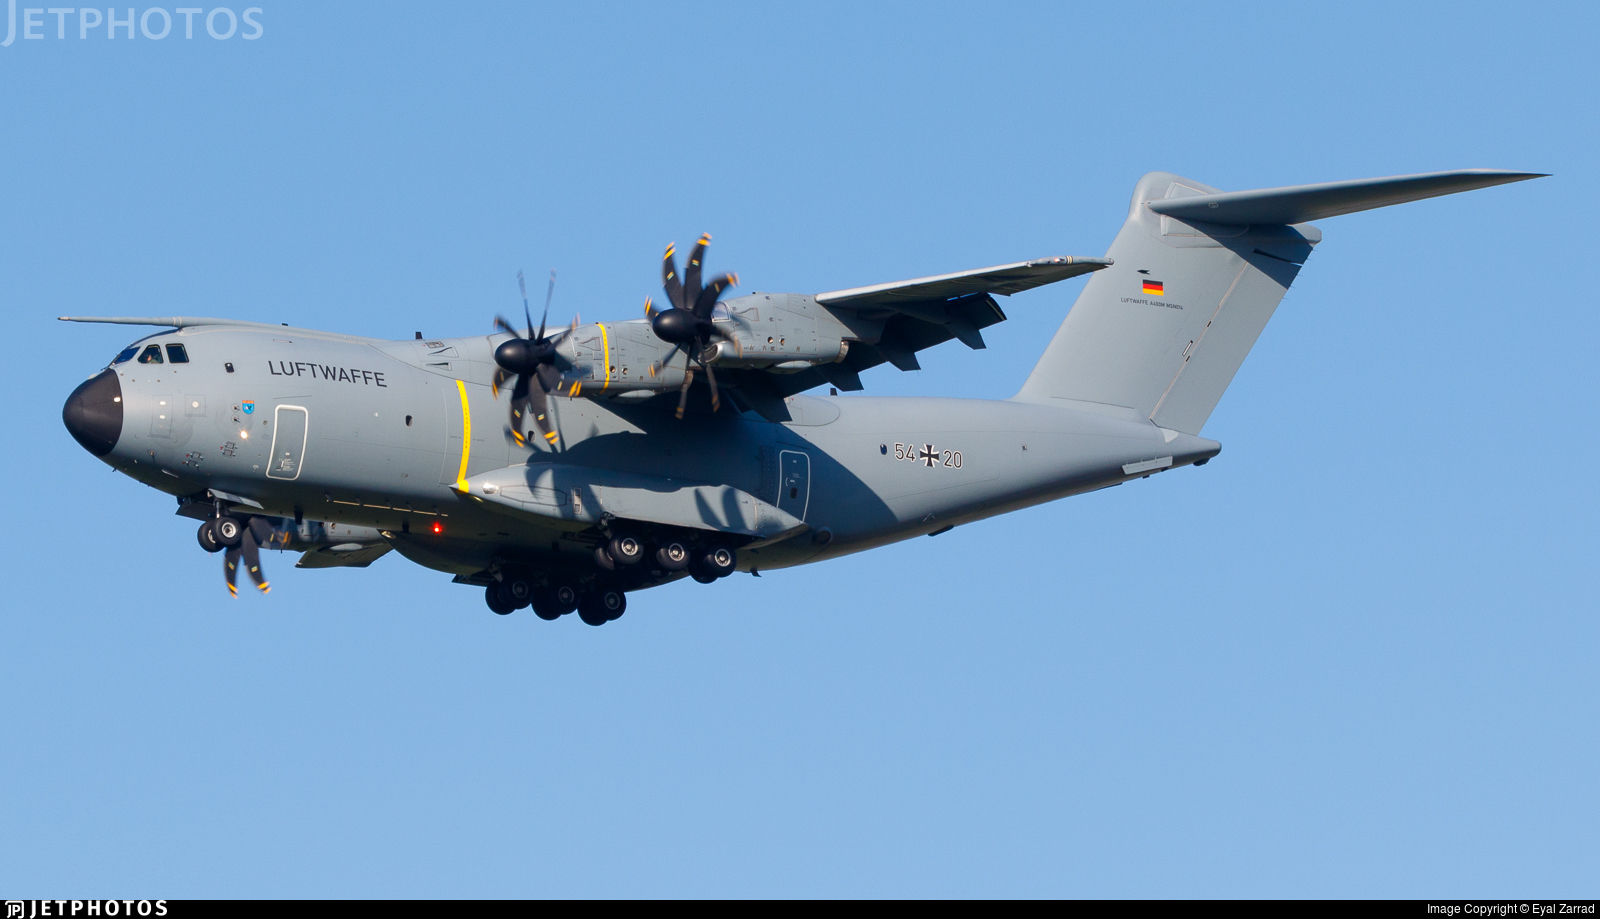 54-20 - Airbus A400M - Germany - Air Force